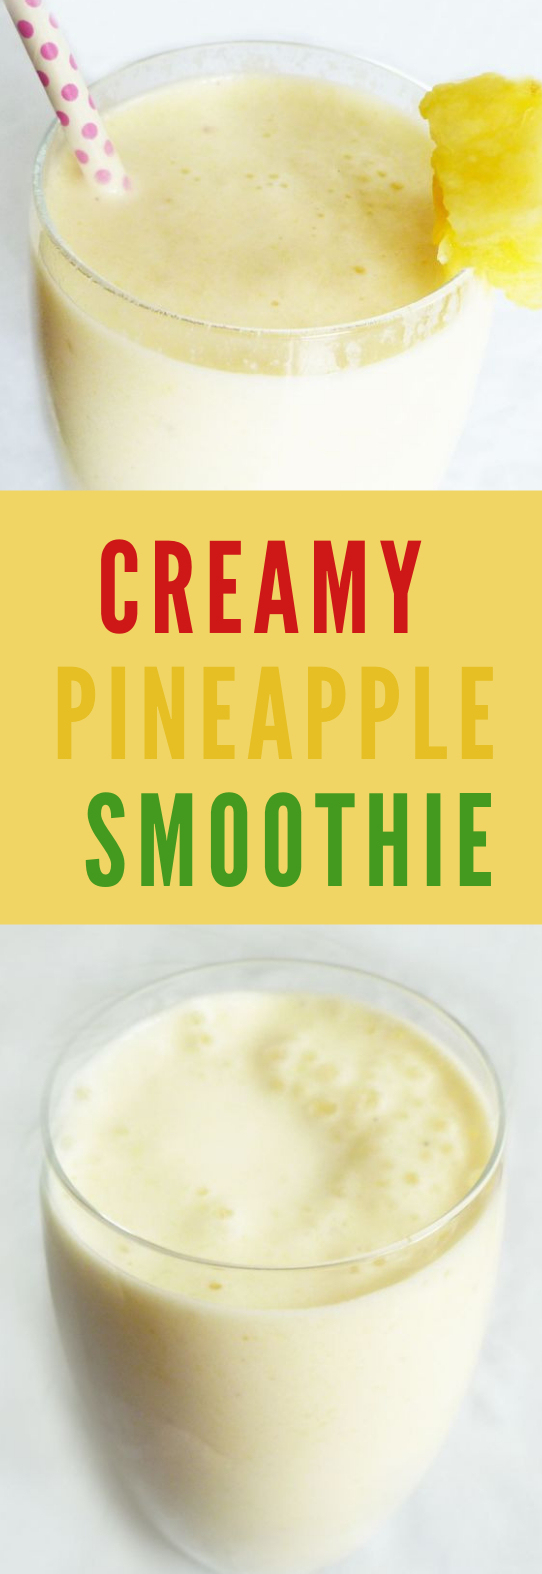 CREAMY PINEAPPLE SMOOTHIE #healthydrink #smoothie